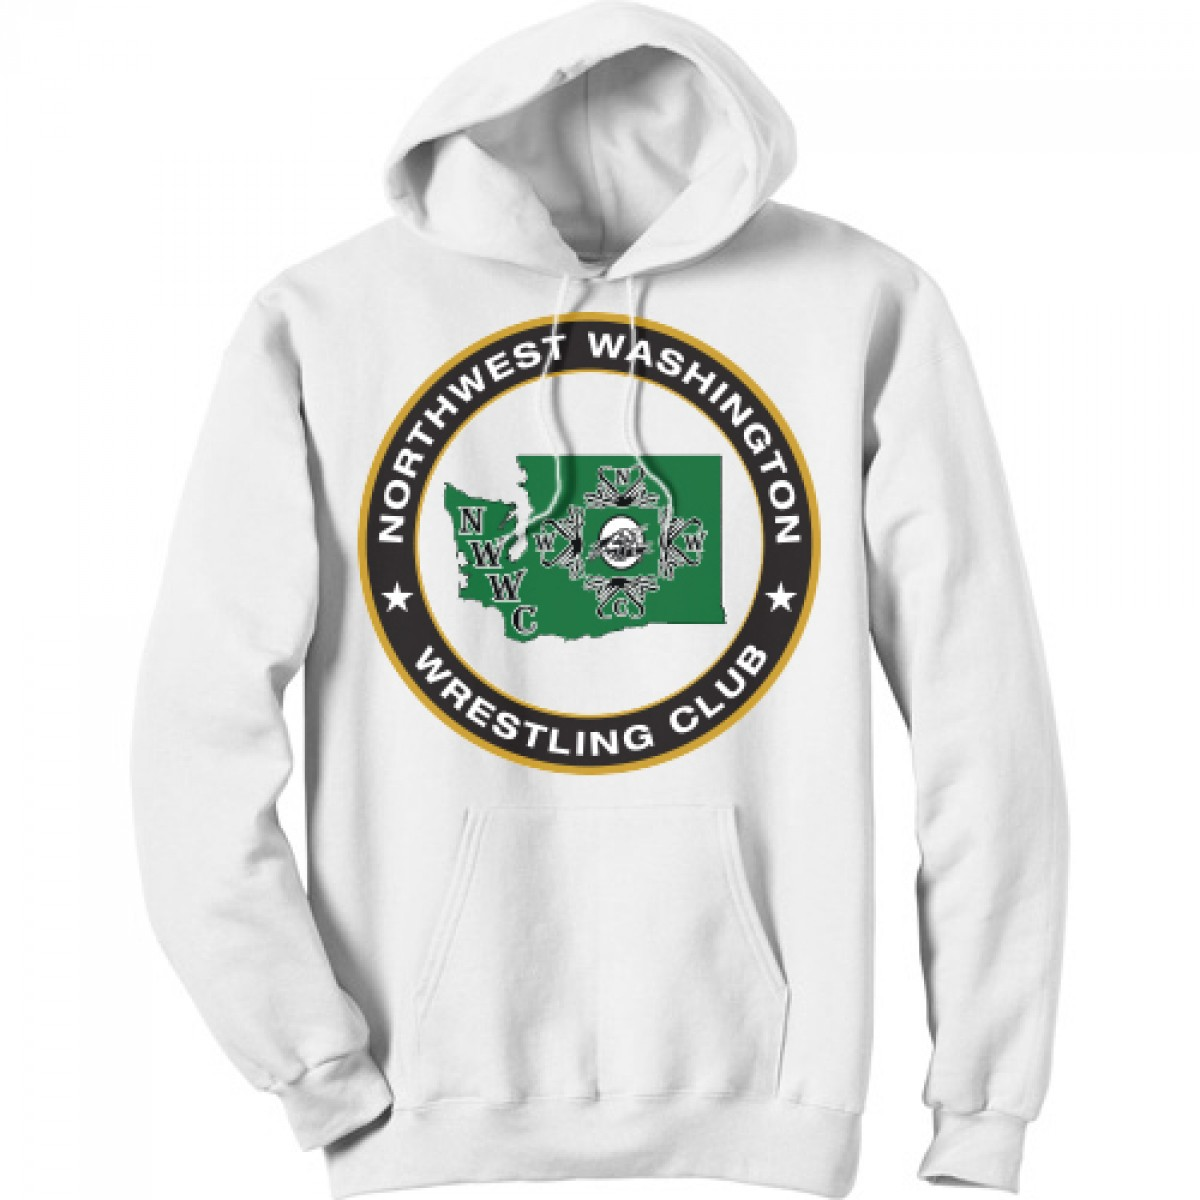 NWWC White Hoodie With Green Logo